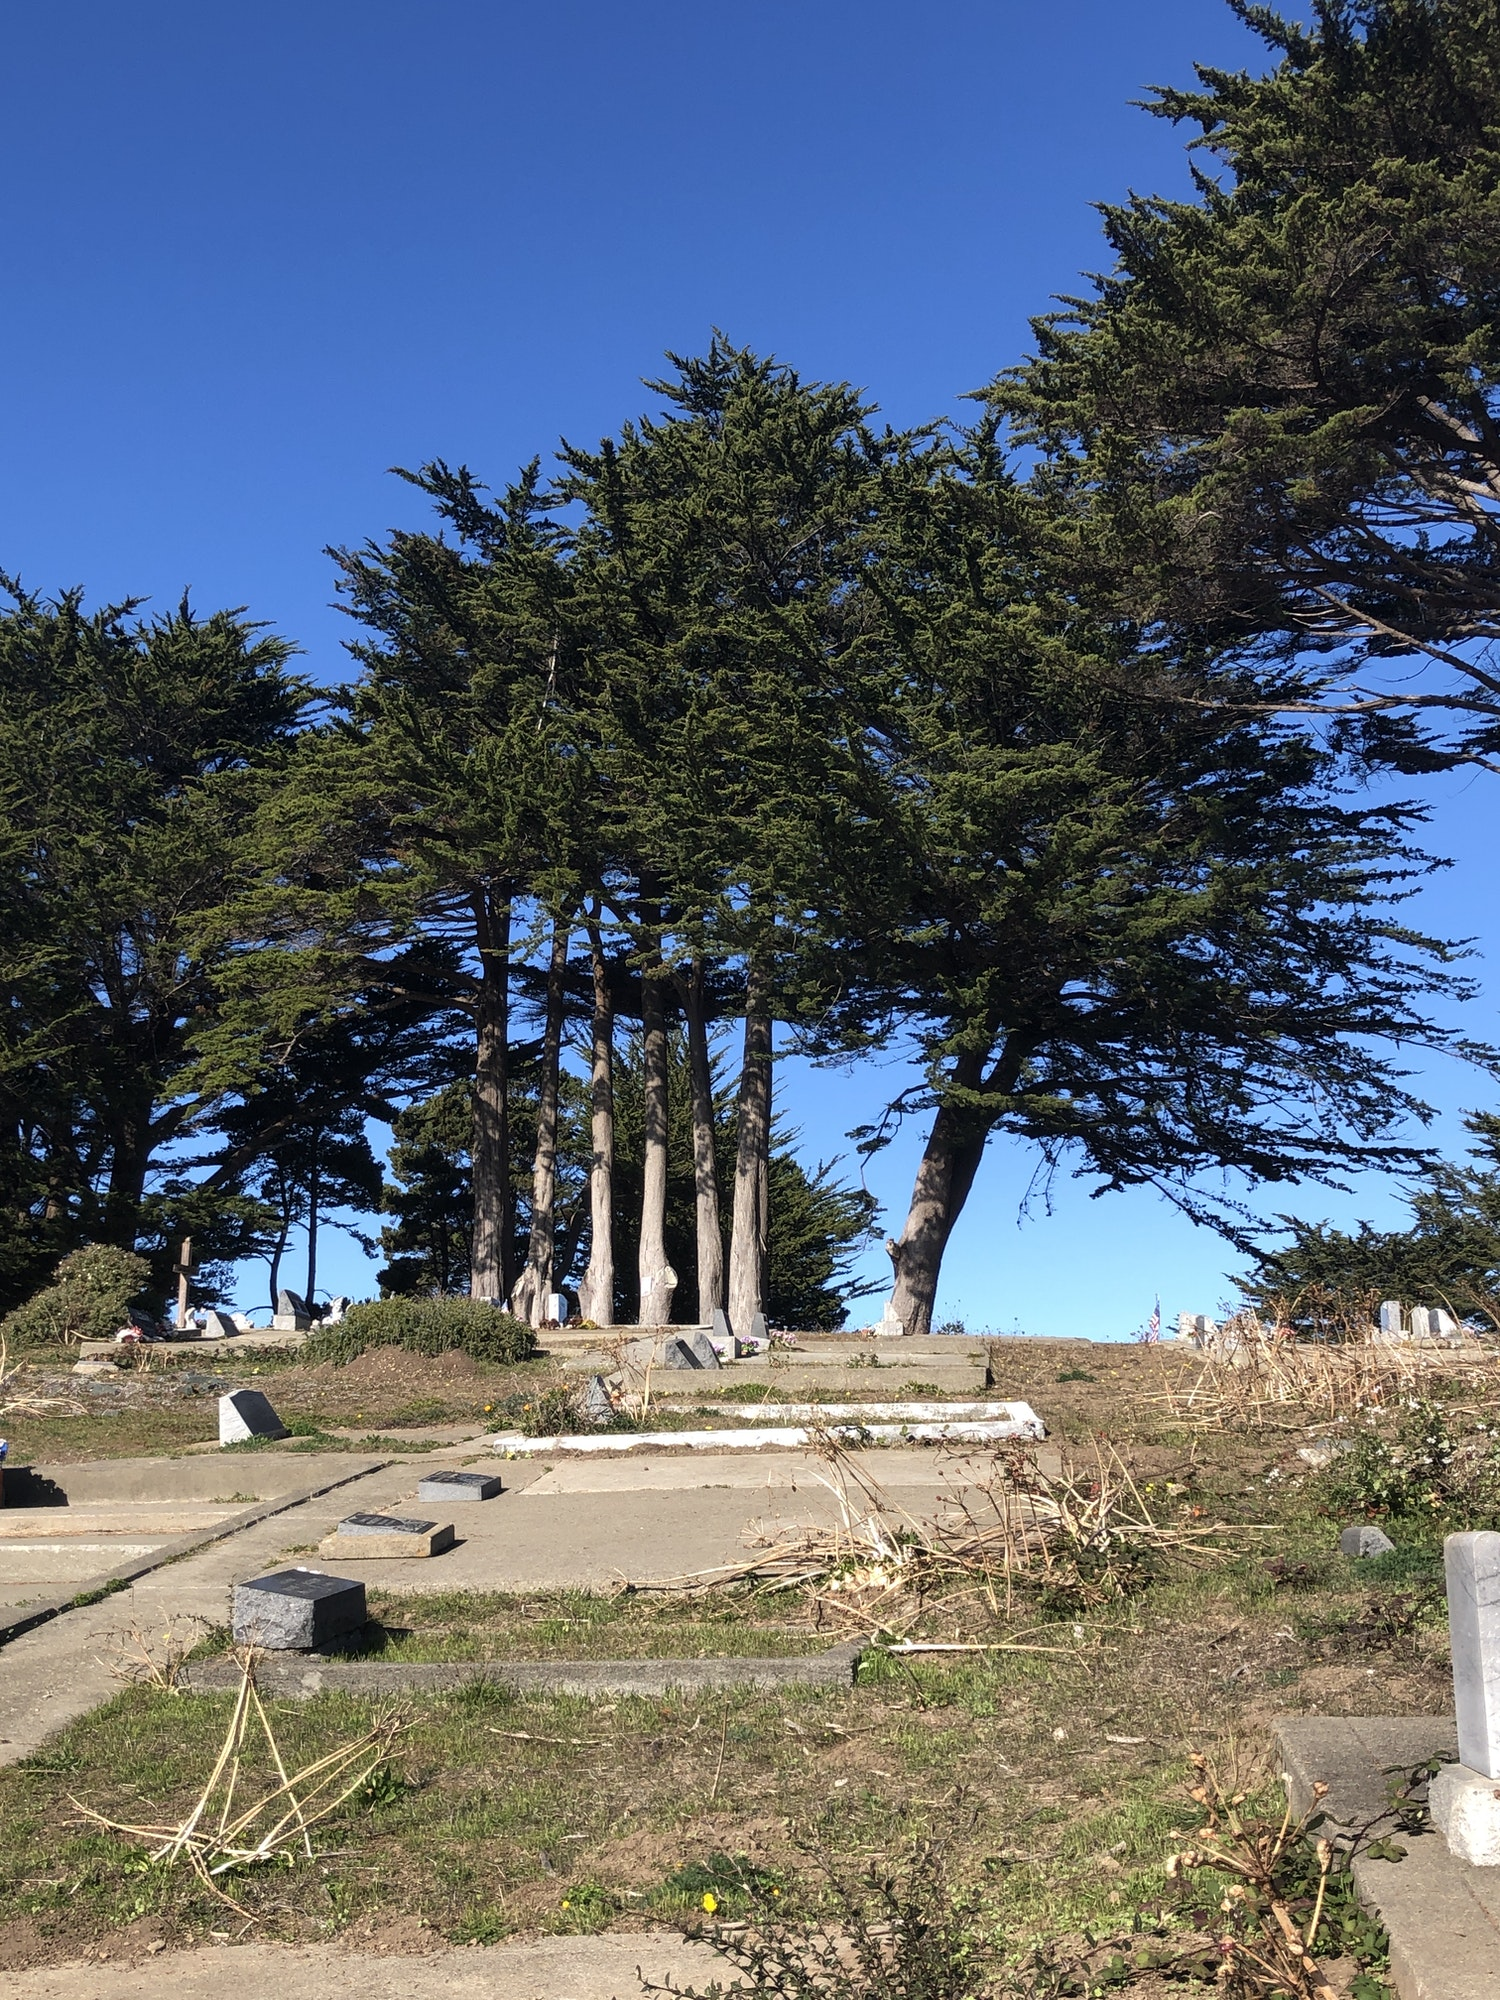 Photo of tombstones and a graveyard with large cypress trees.